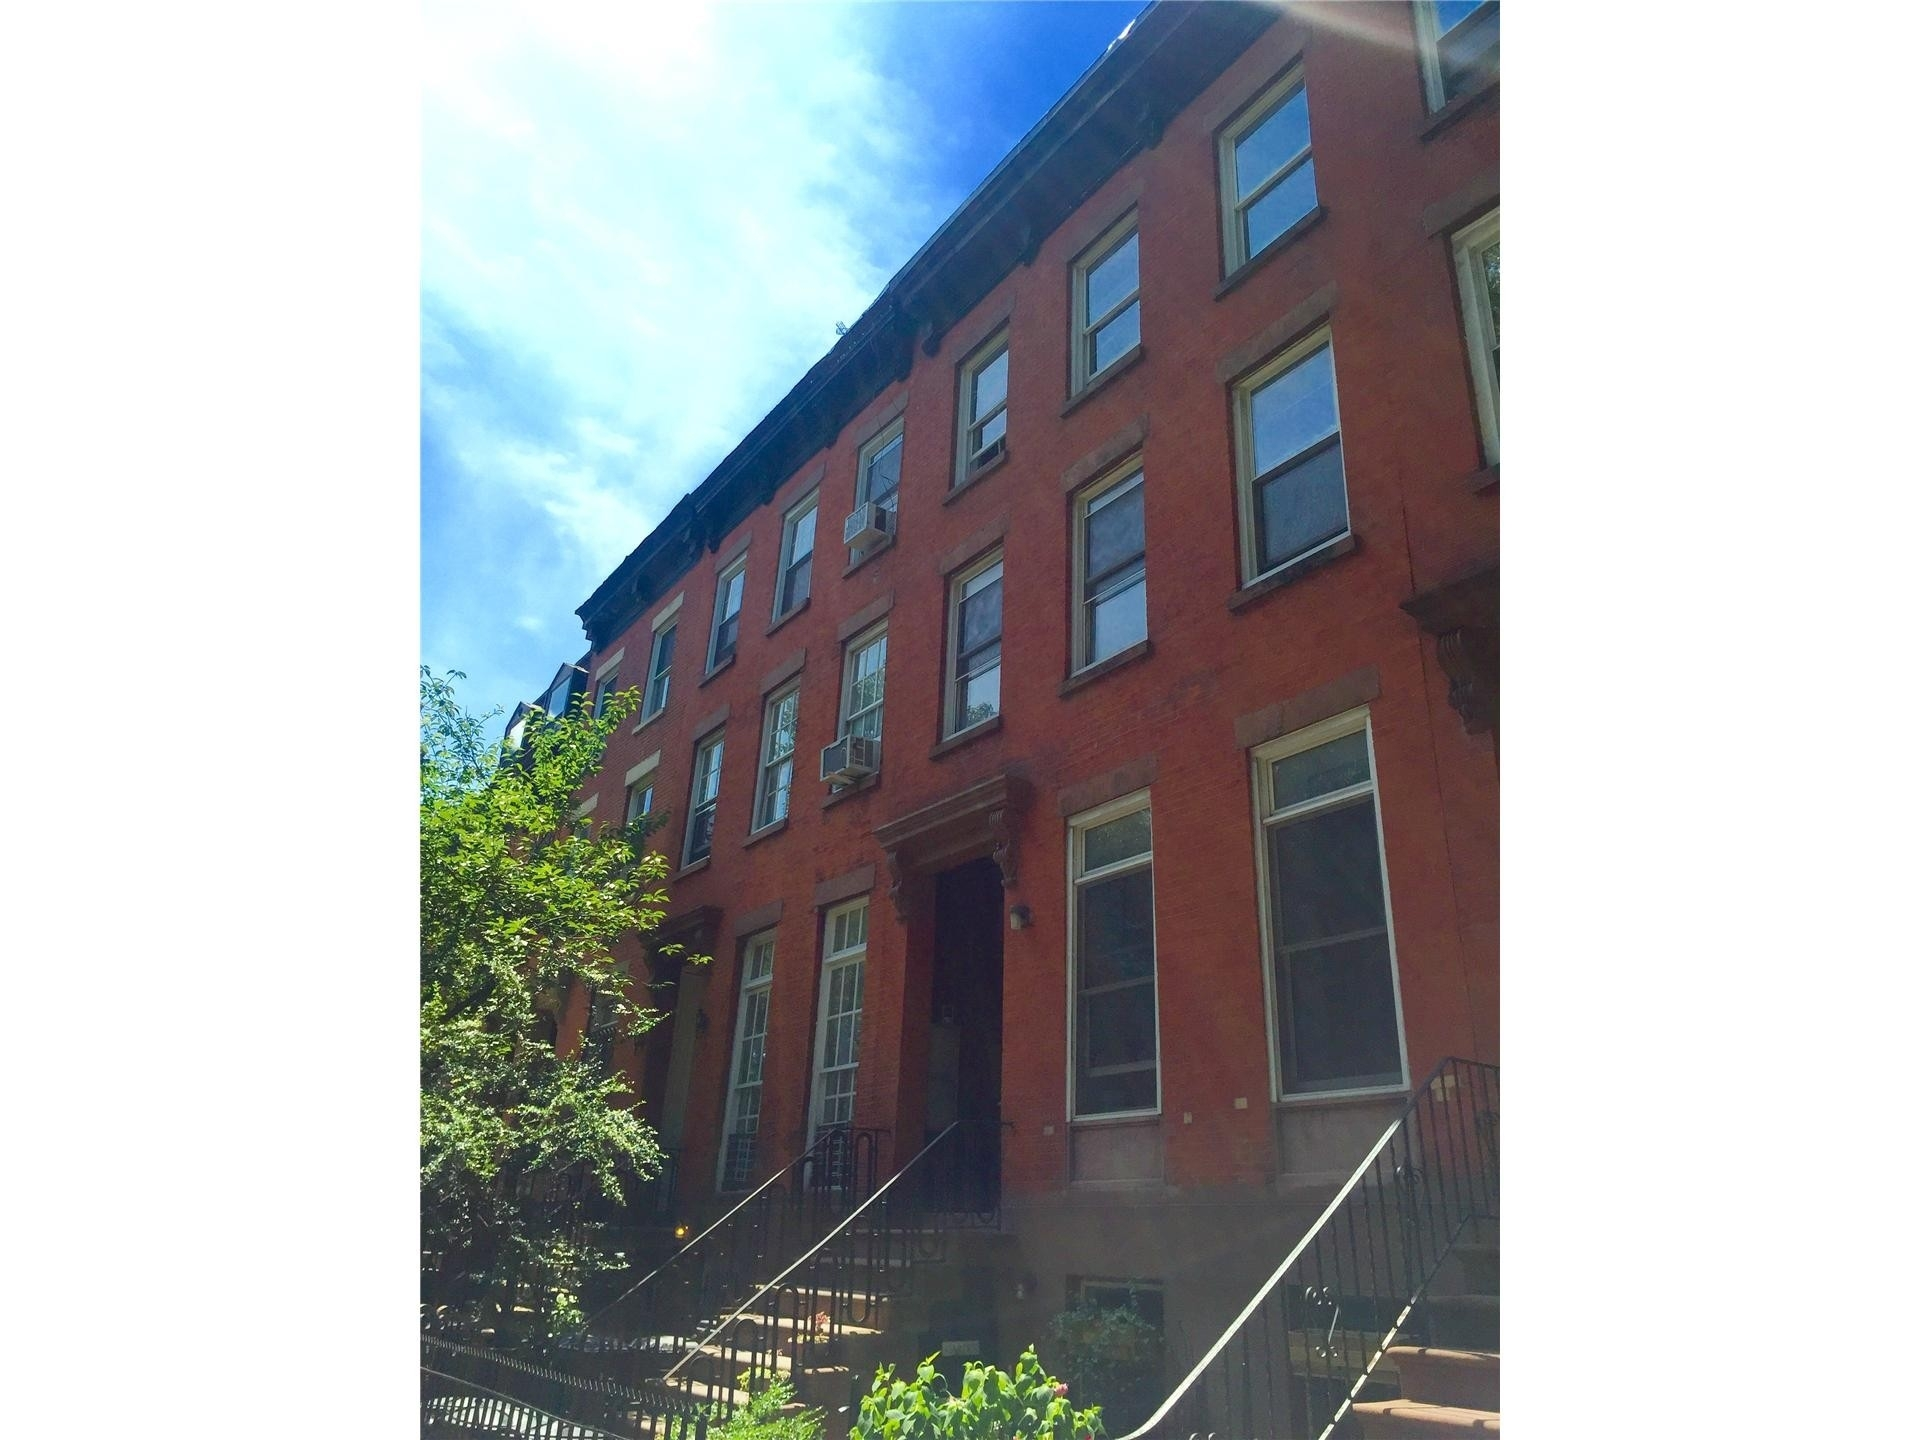 1. edificio en 100 Bergen St, Boerum Hill, Brooklyn, NY